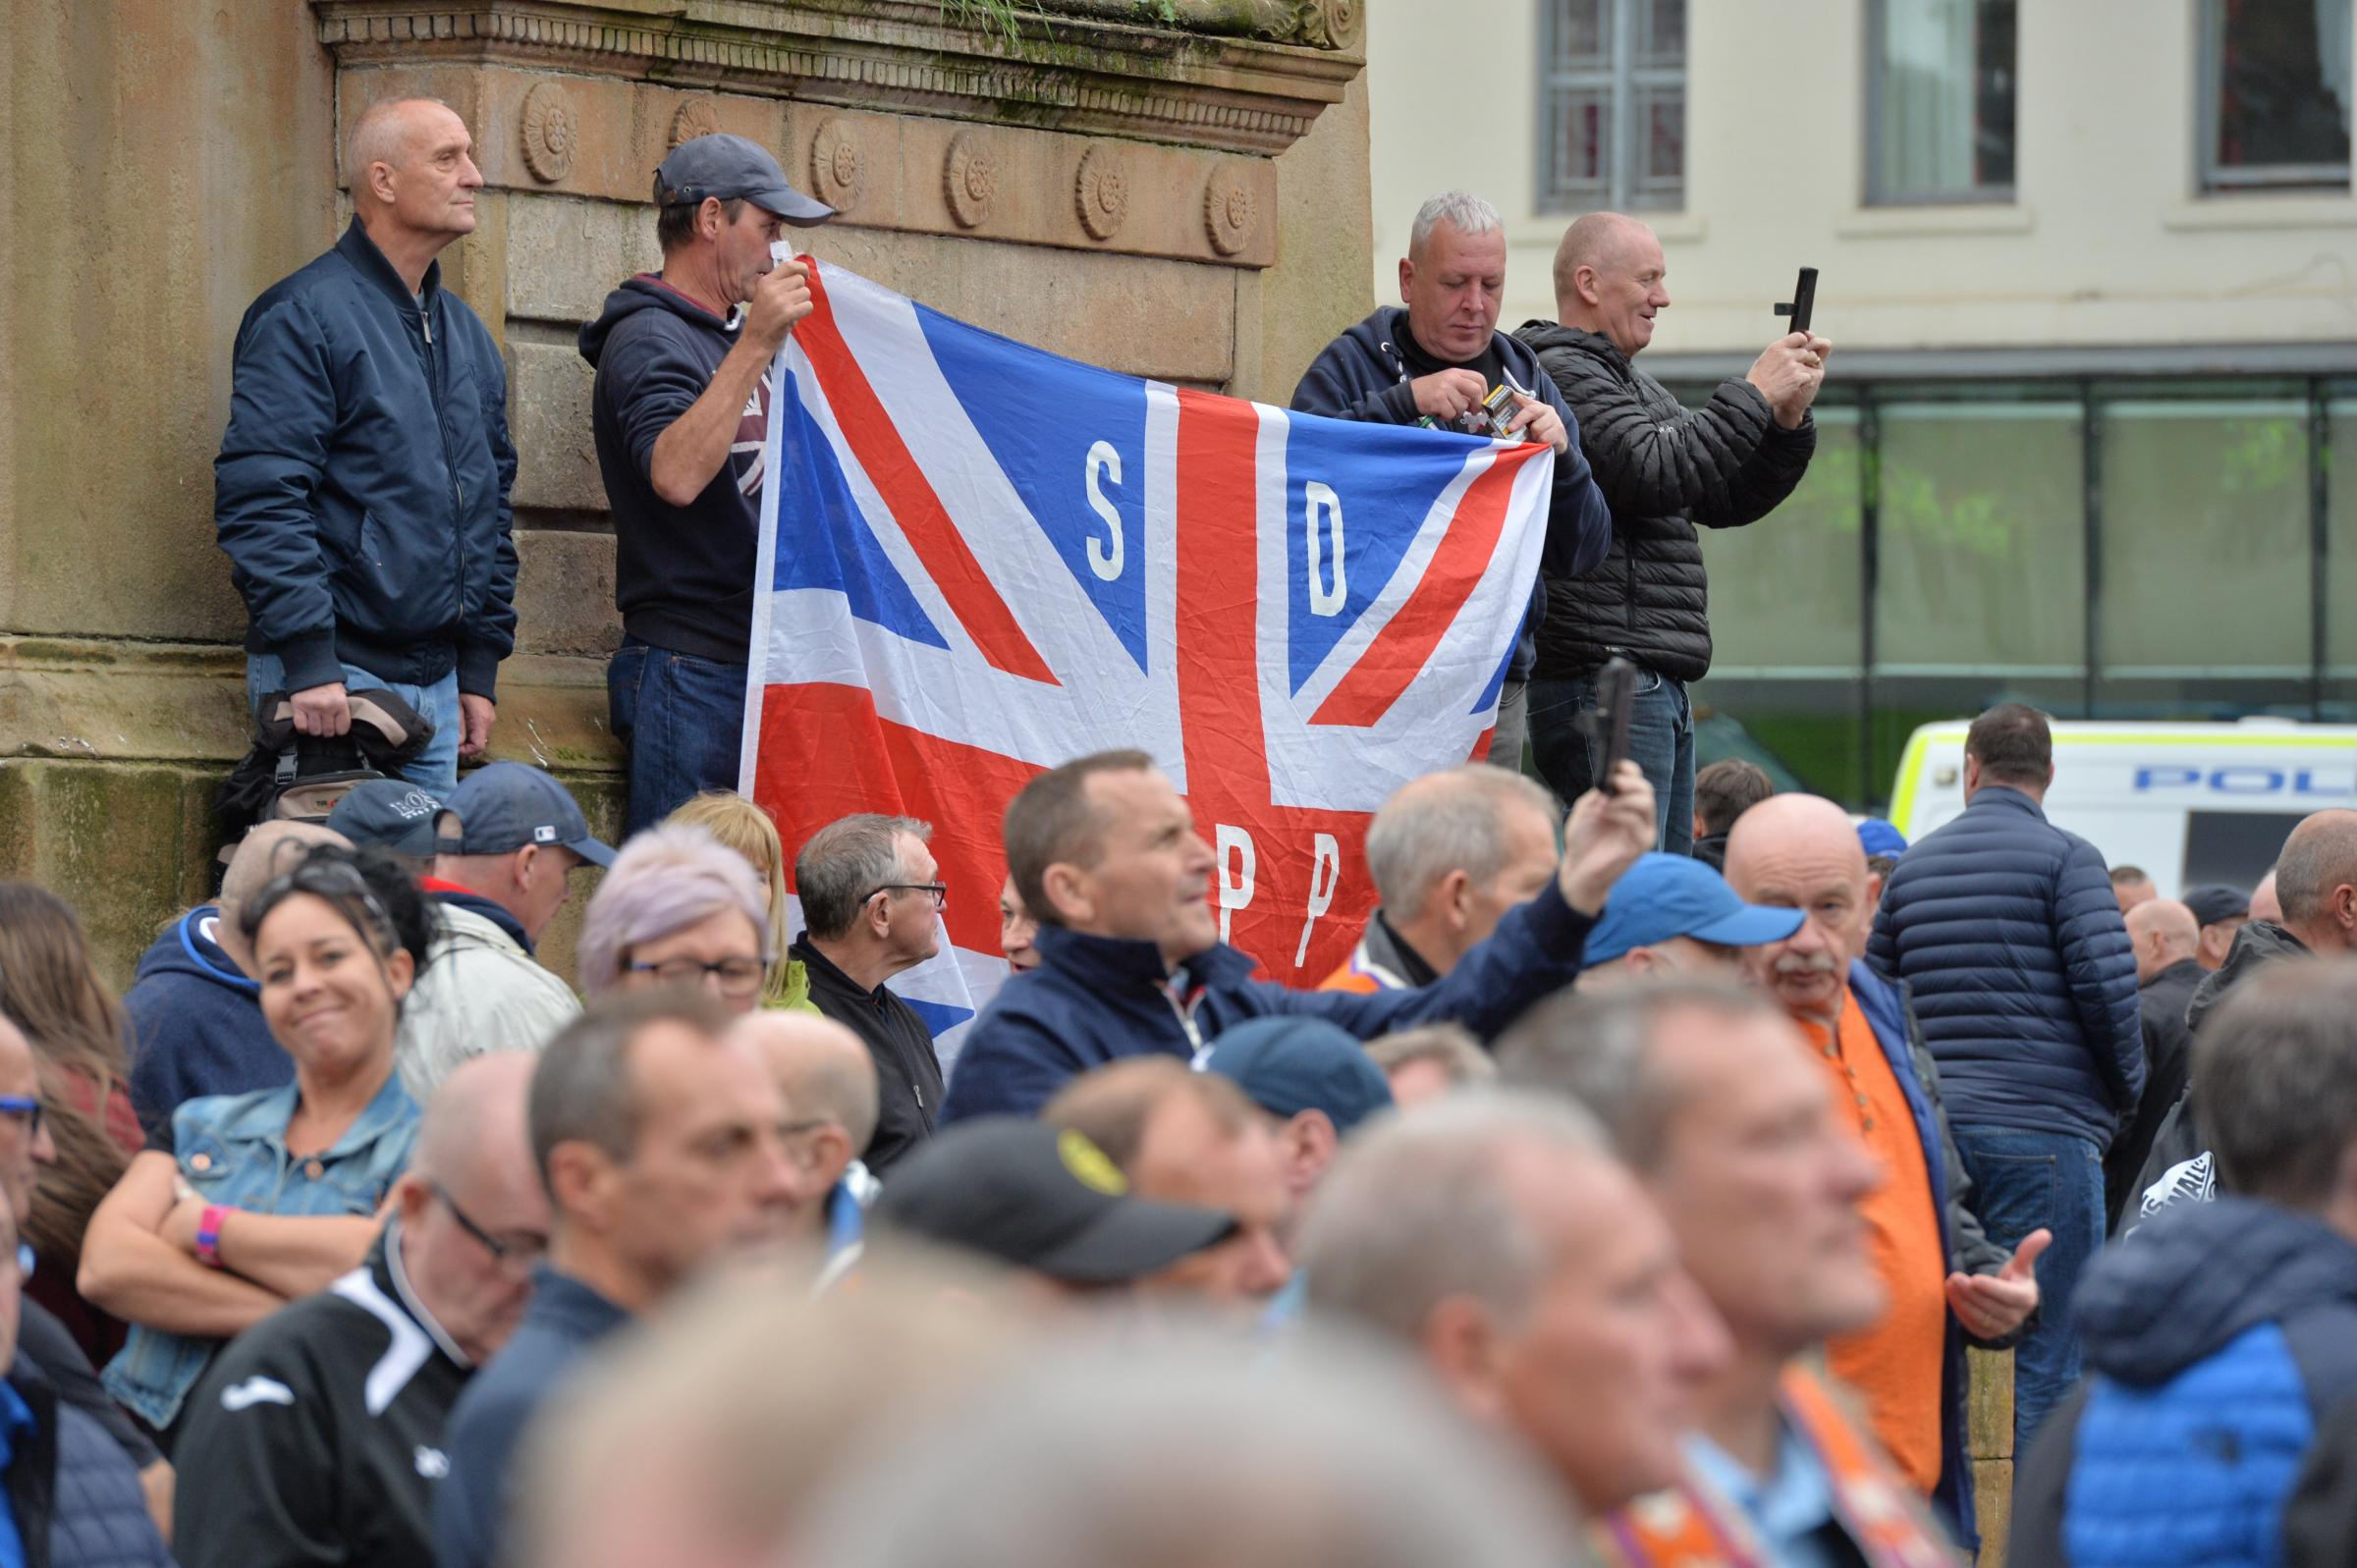 Glasgow loyalist group would be 'bitterly disappointed' if council banned weekend marches